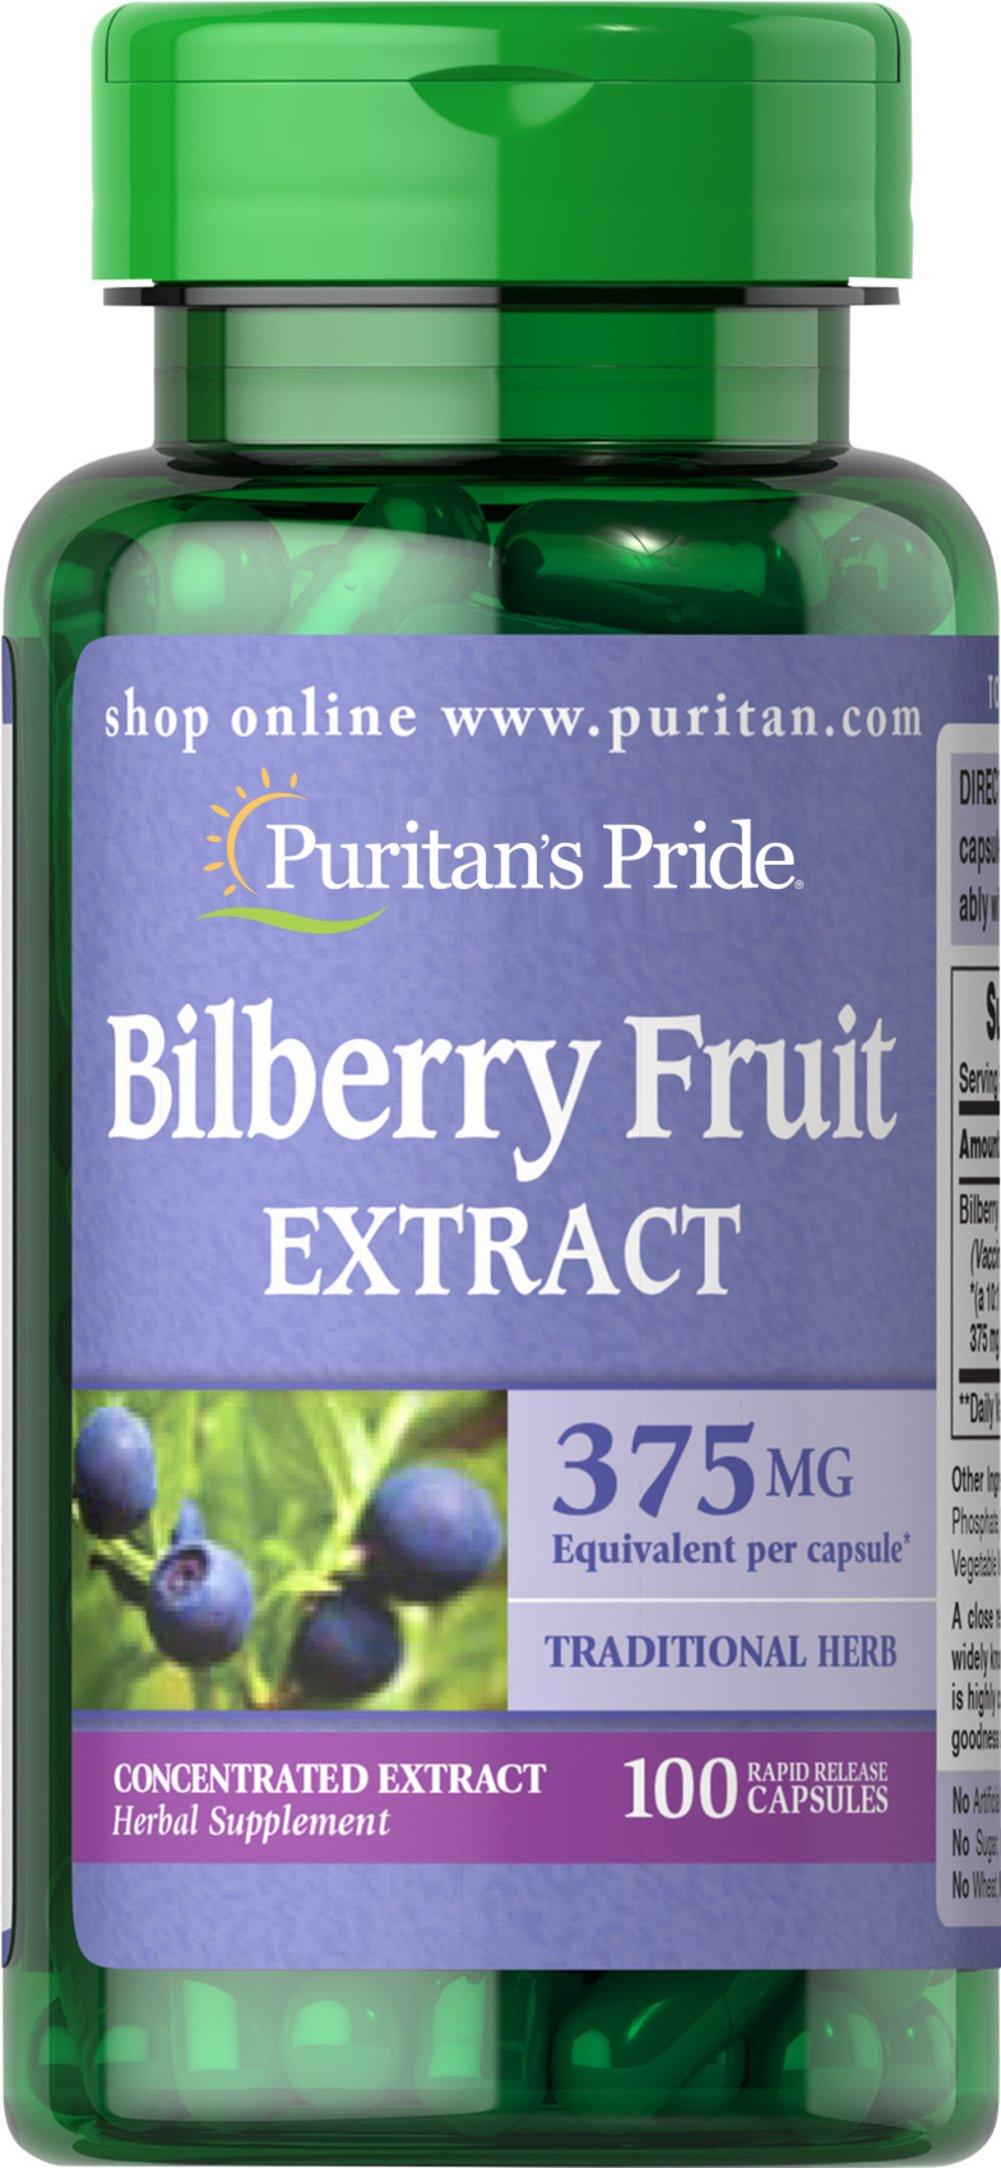 Bilberry 10:1 Extract 375 mg  100 Capsules 375 mg $10.99